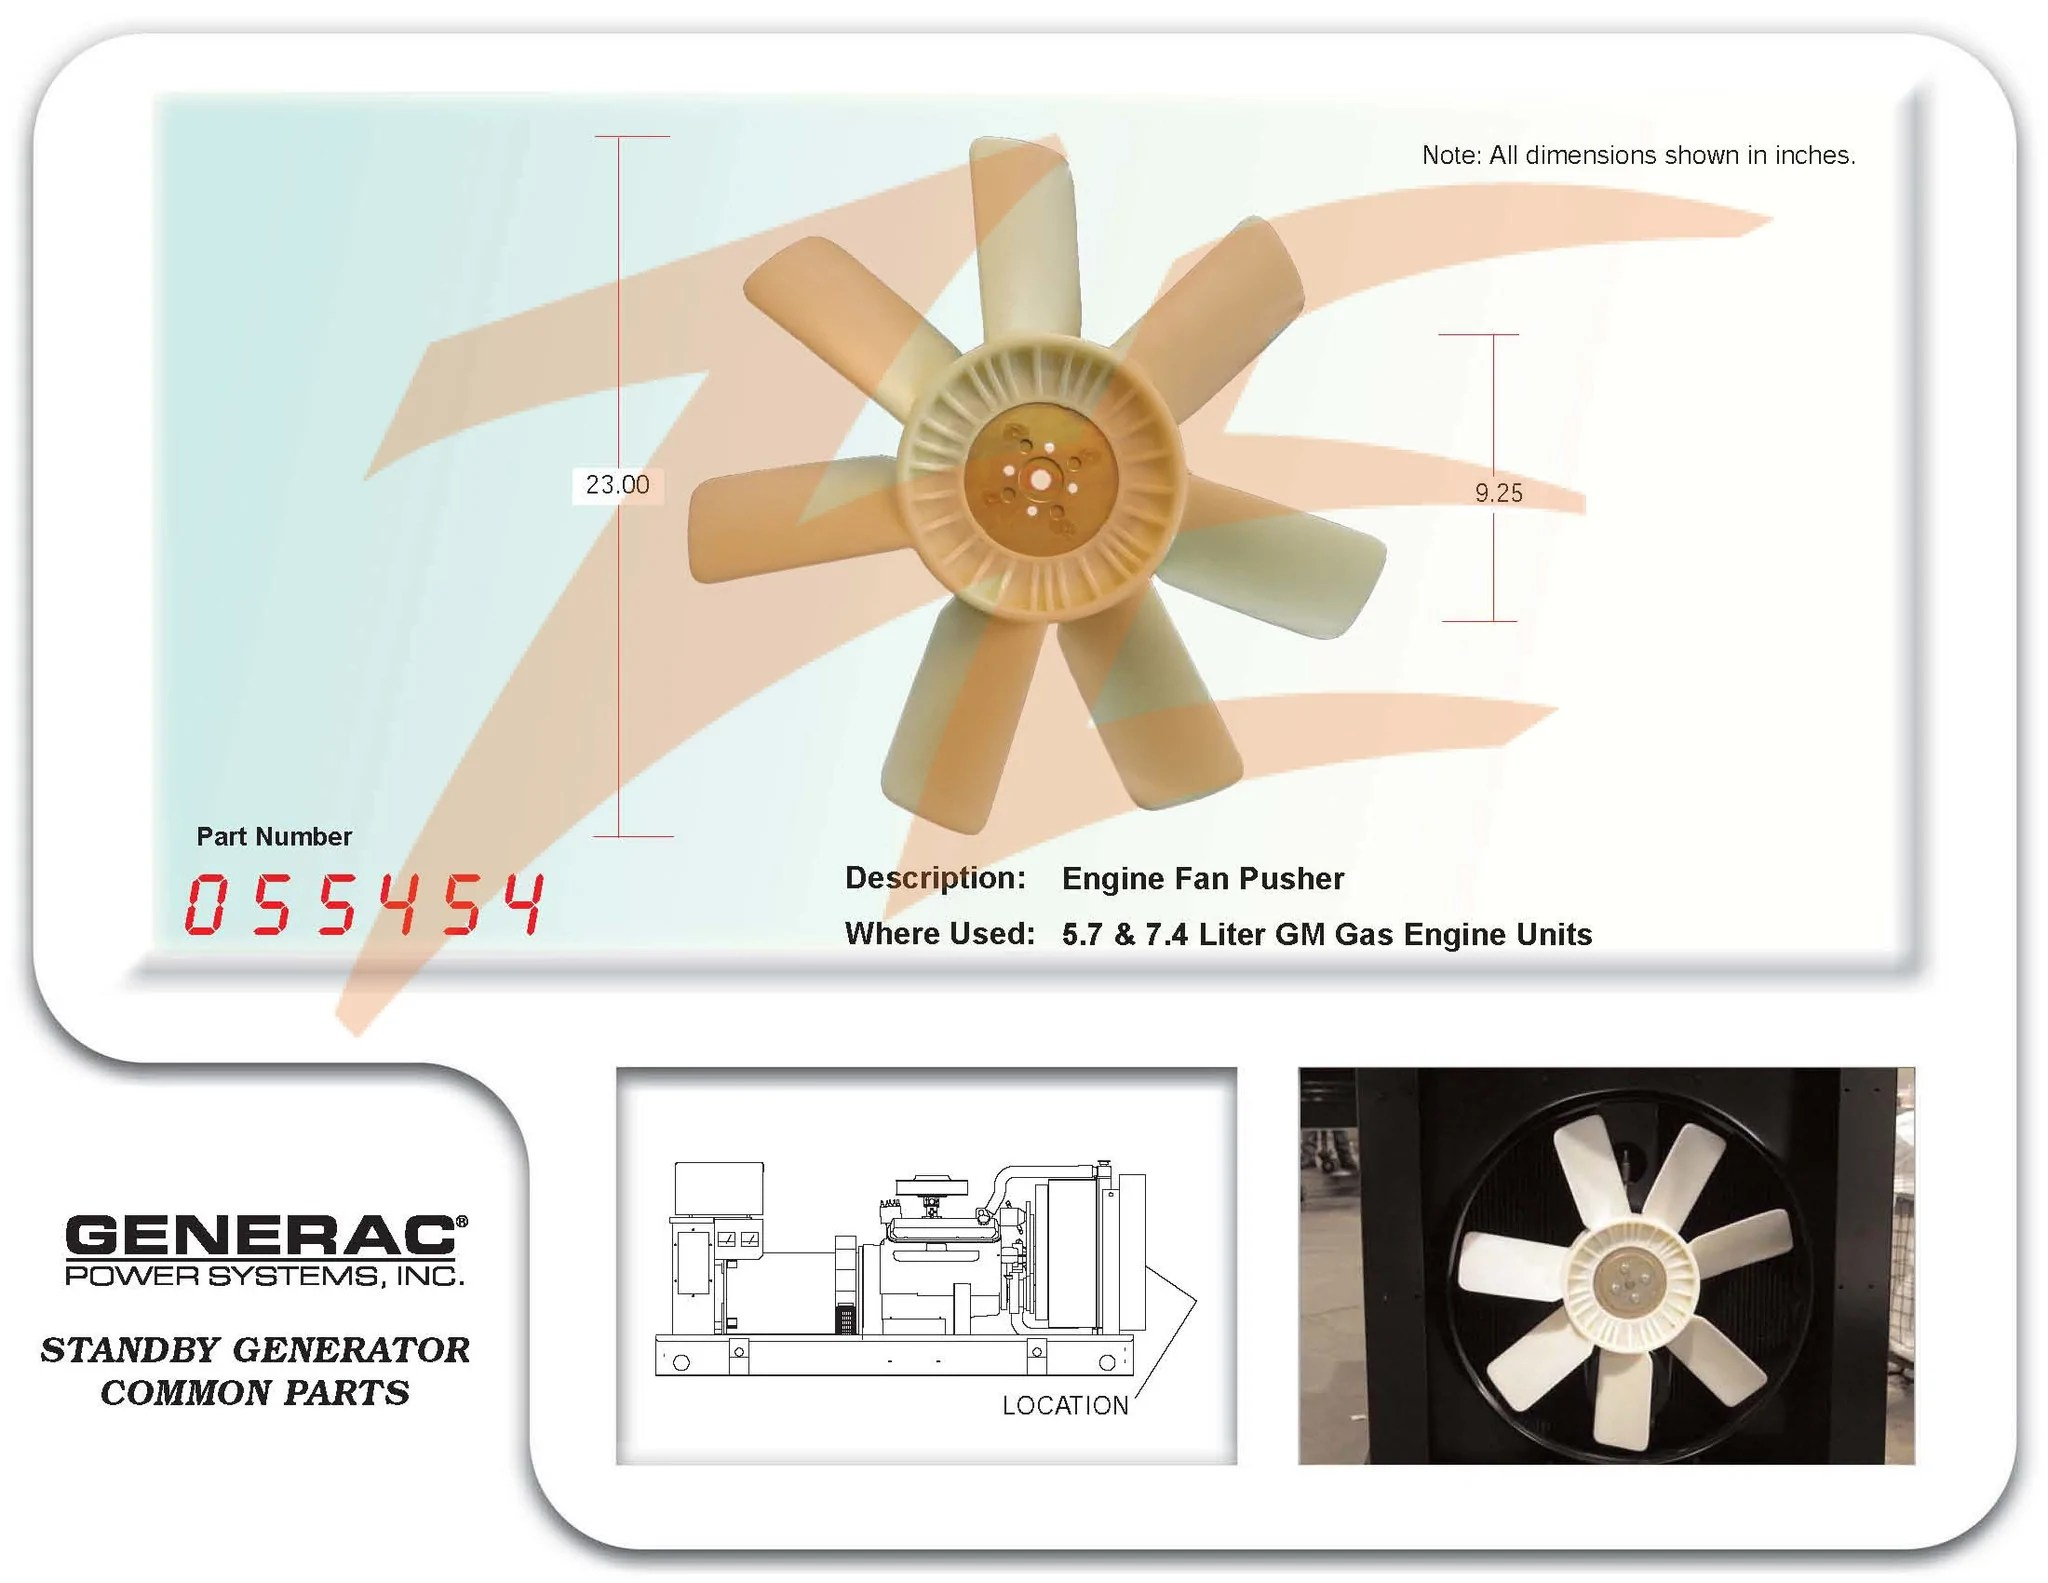 hight resolution of generac 055454 engine cooling fan pusher 5 7 7 4l